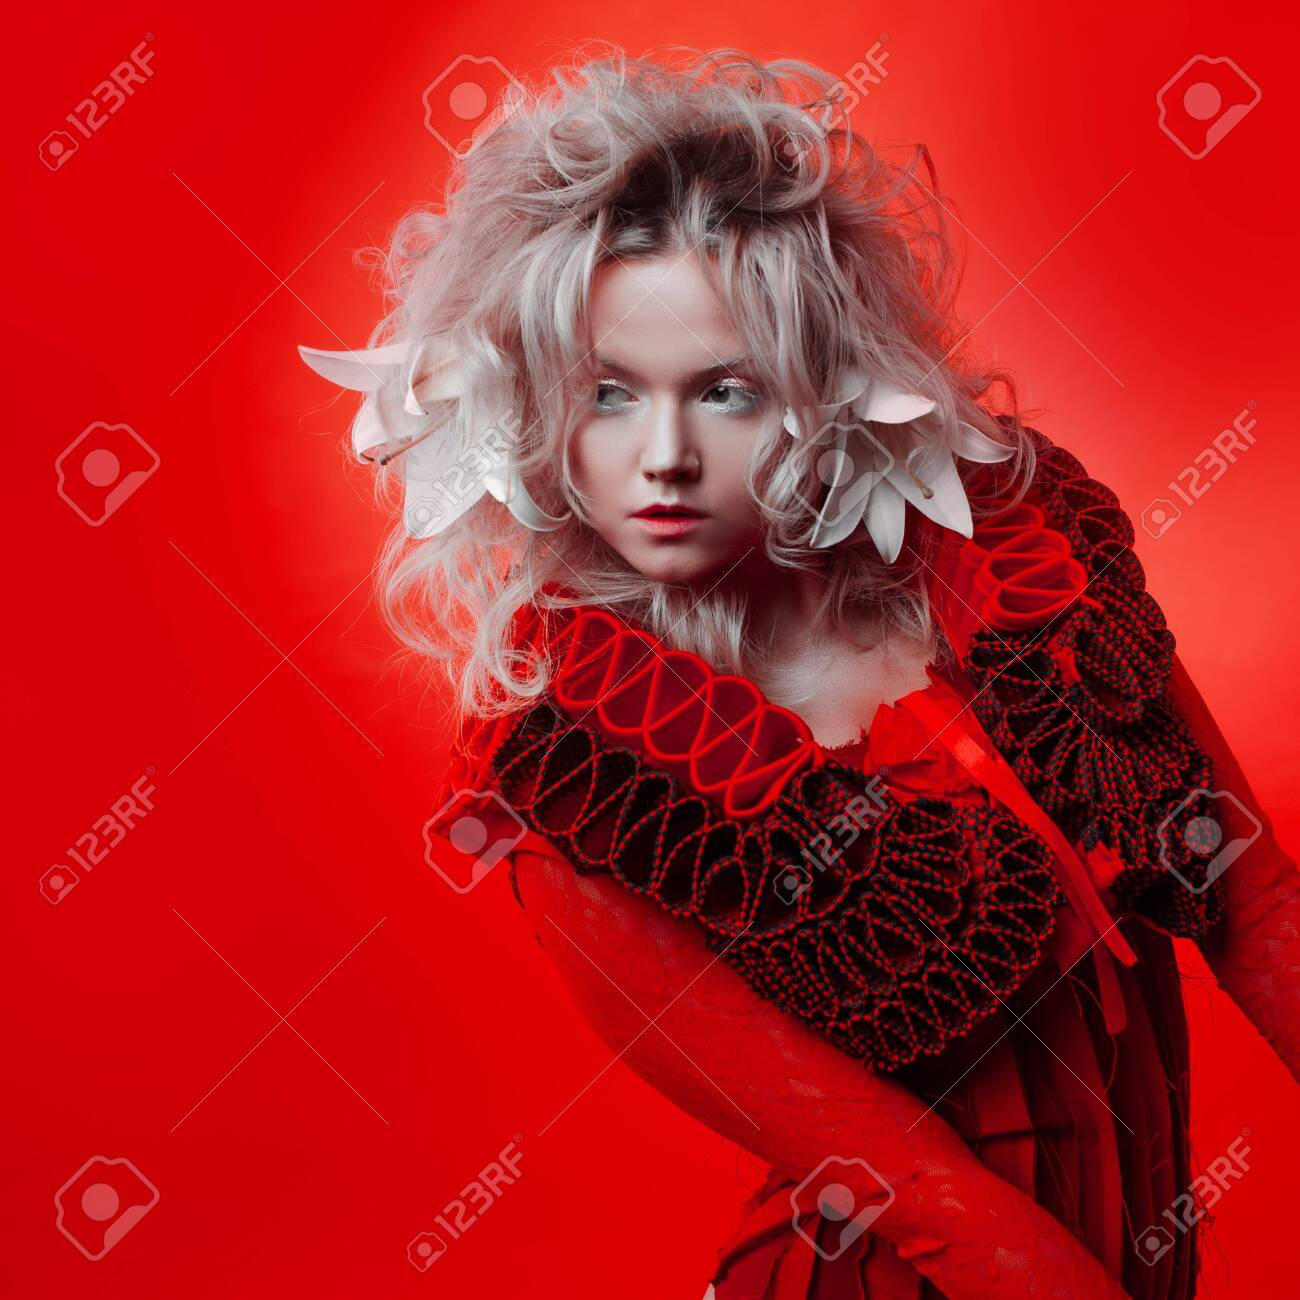 Shades Of Red Strange Attractive Blonde Woman With White Eyelashes Stock Photo Picture And Royalty Free Image Image 131518211